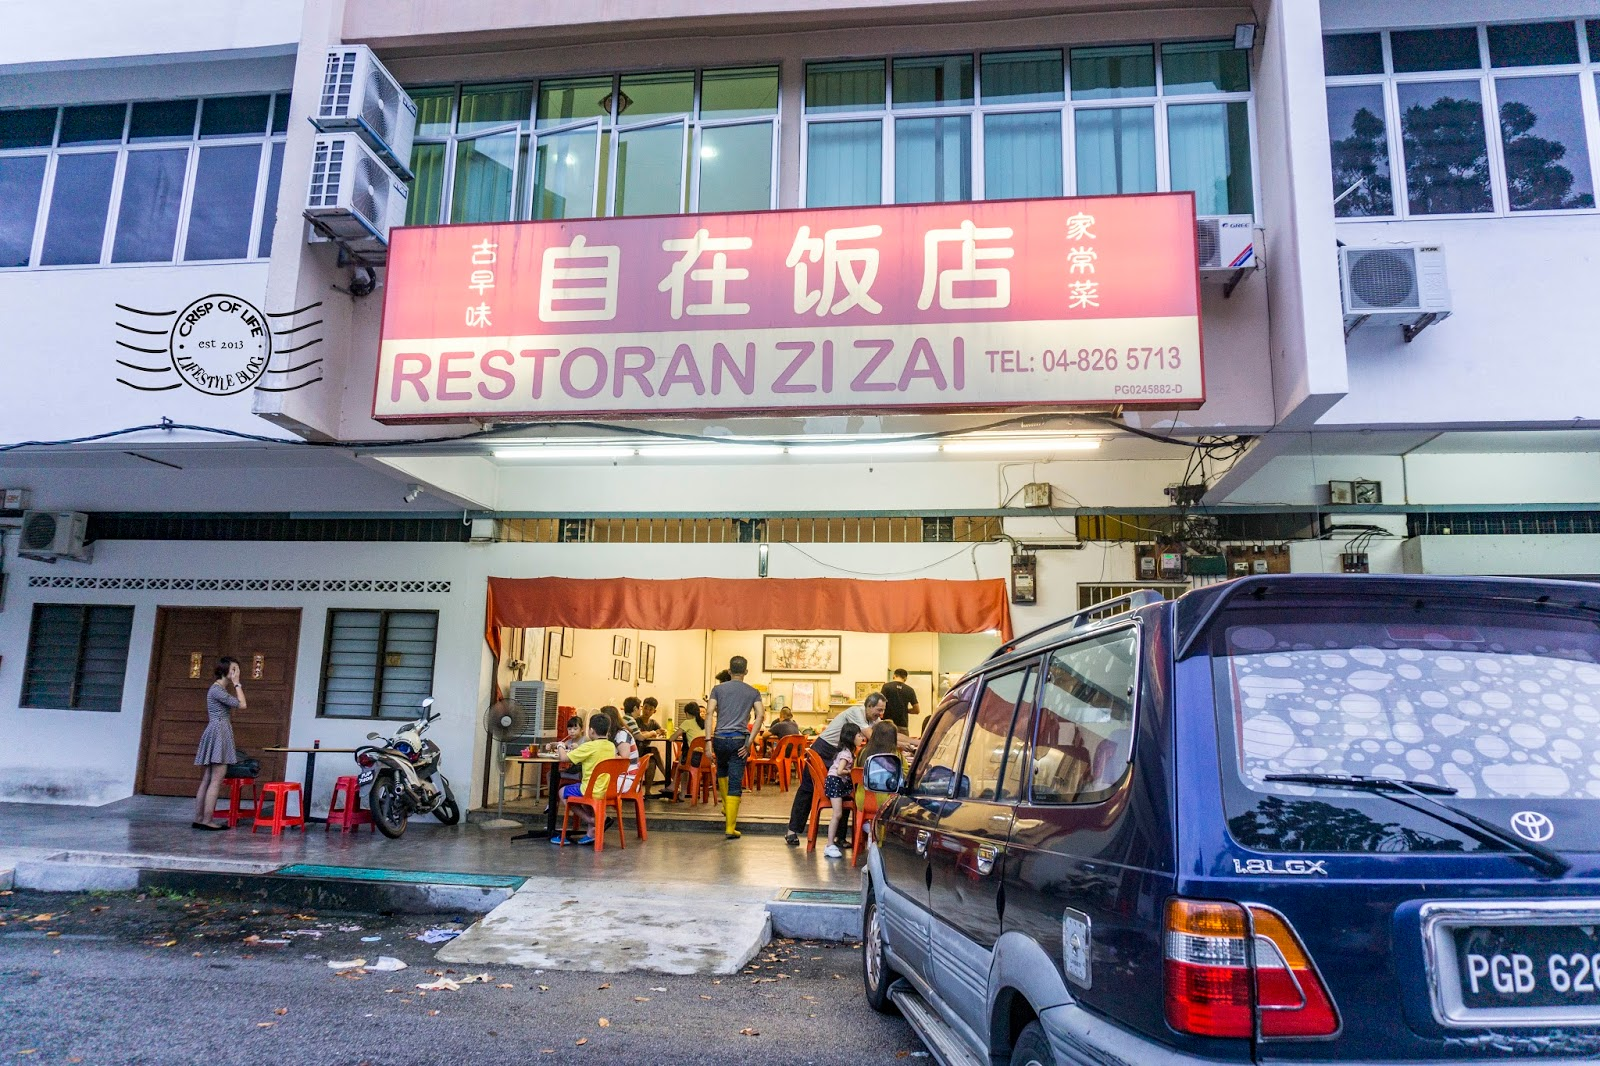 Zi Zai Restaurant 自在饭店 with 21 dishes Challenge @ Air Itam, Penang